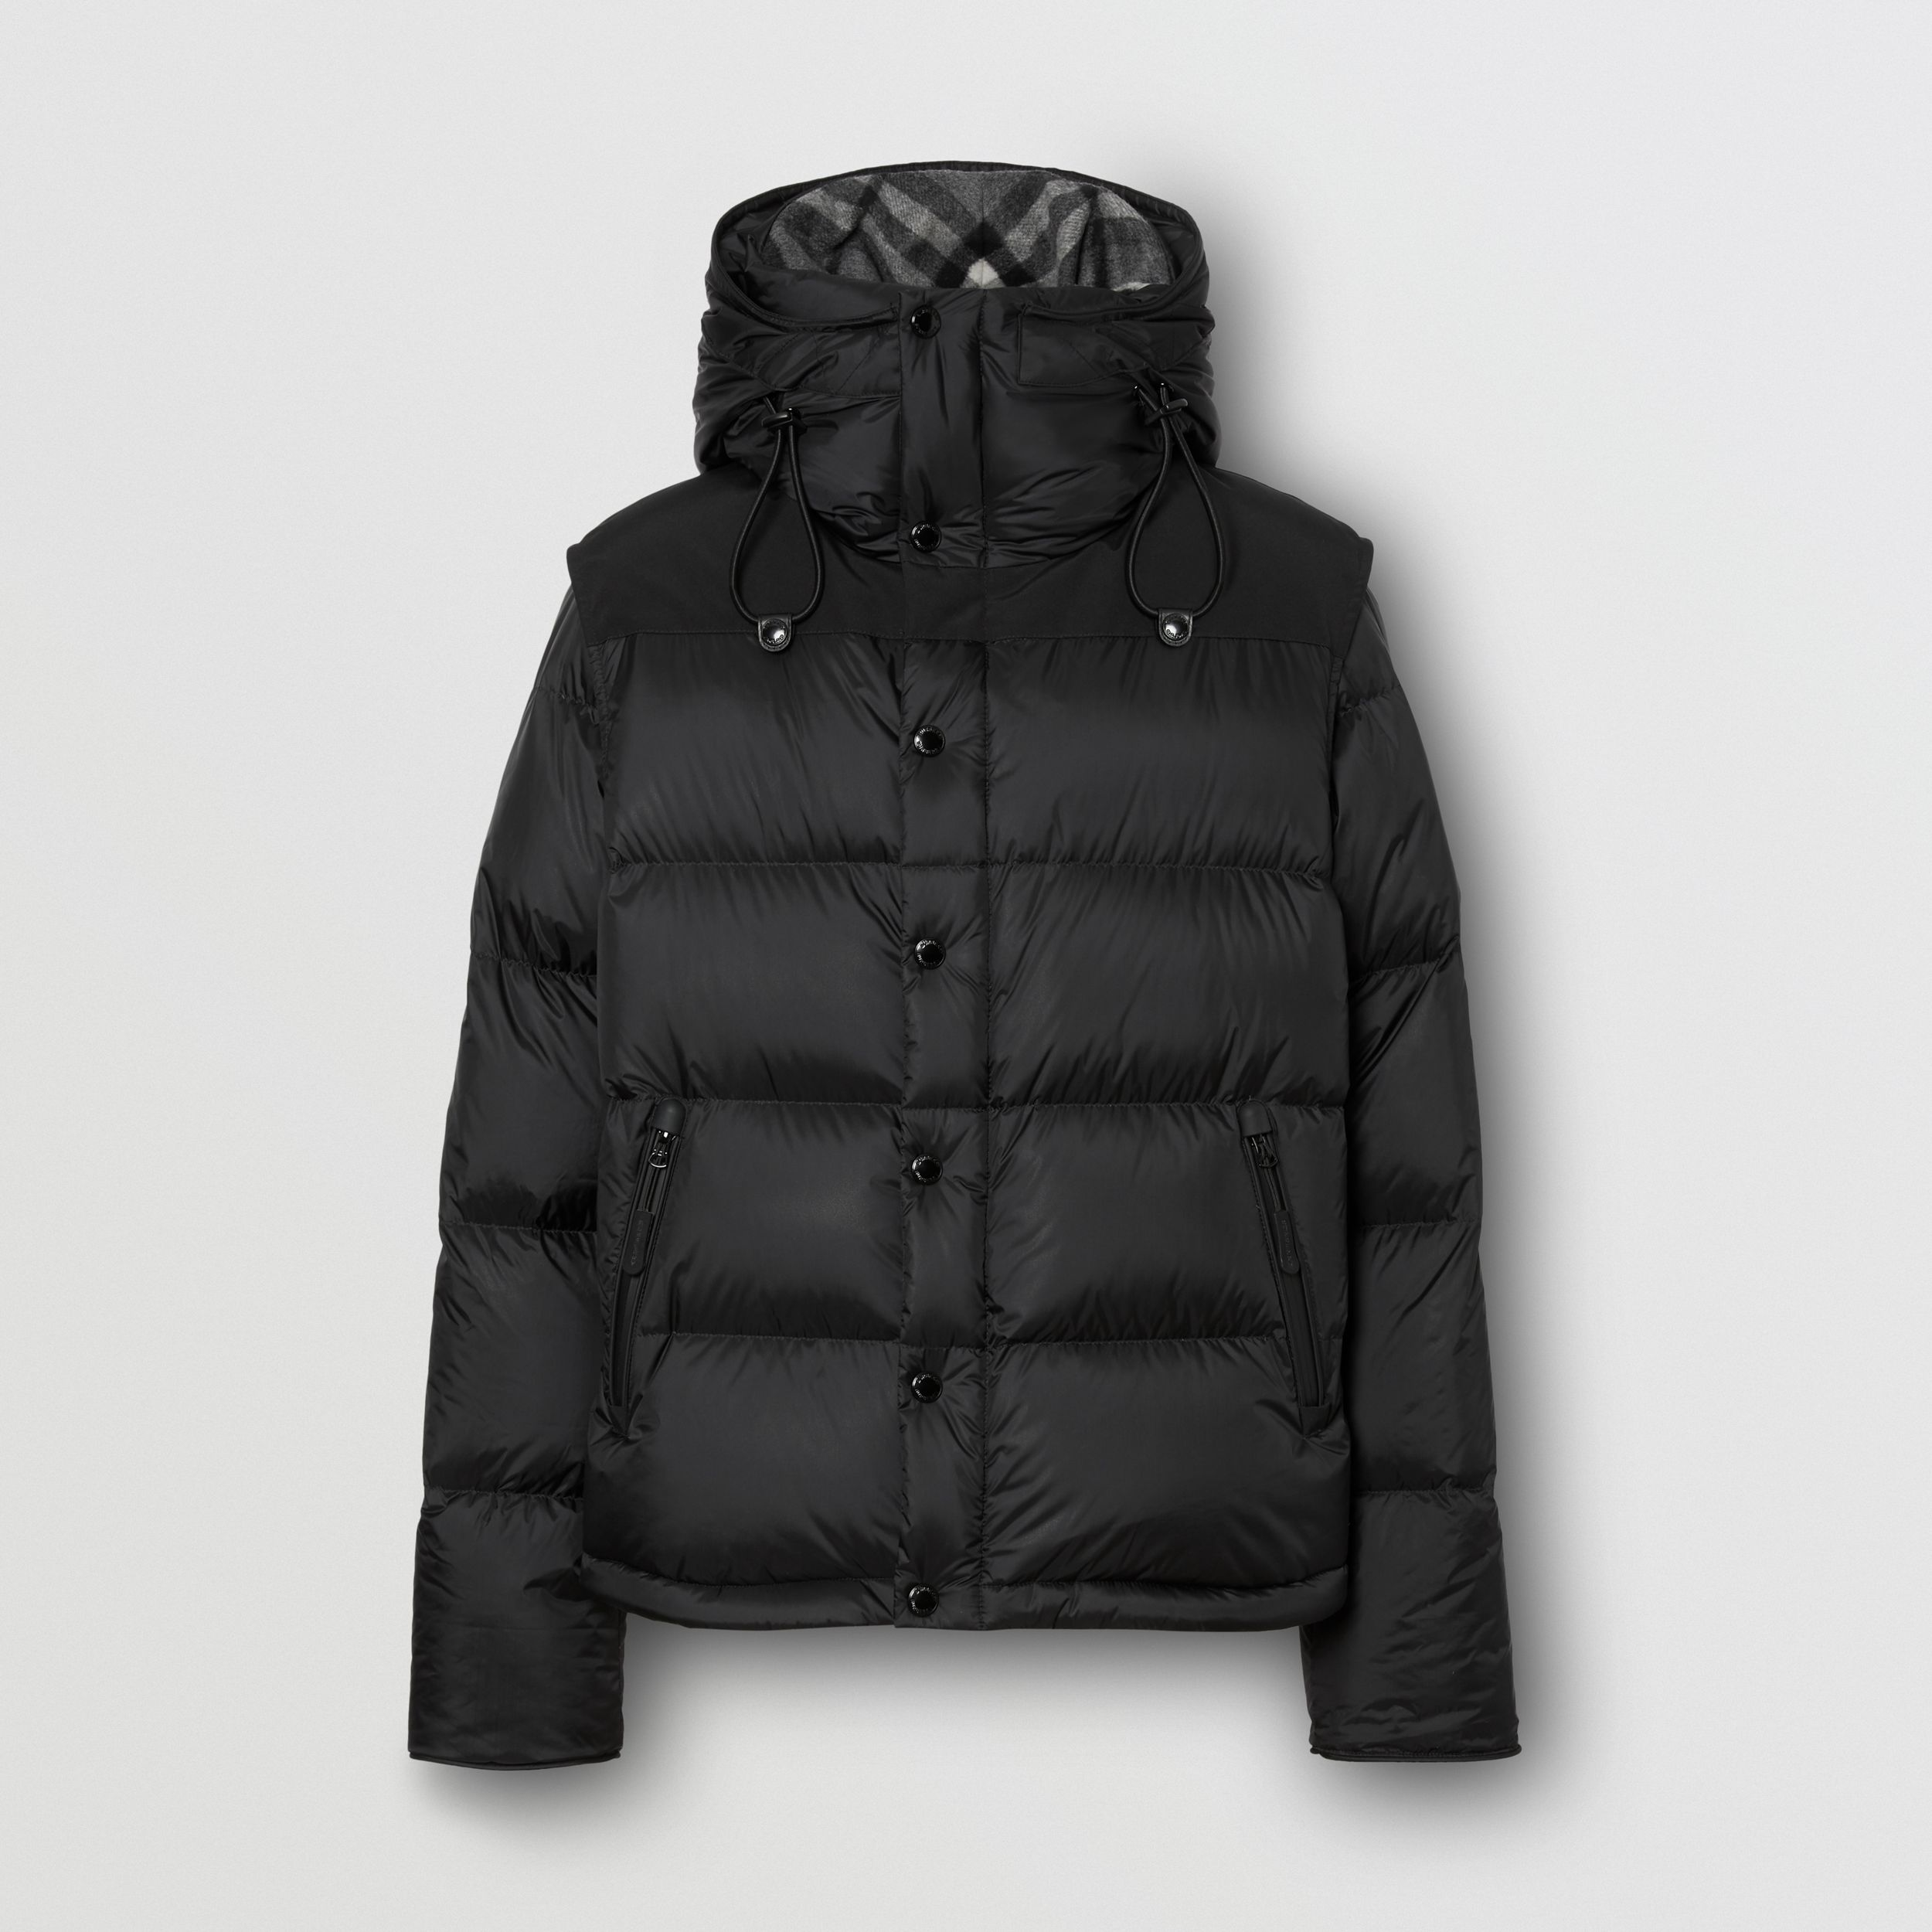 Detachable Sleeve Hooded Puffer Jacket in Black - Men | Burberry - 3